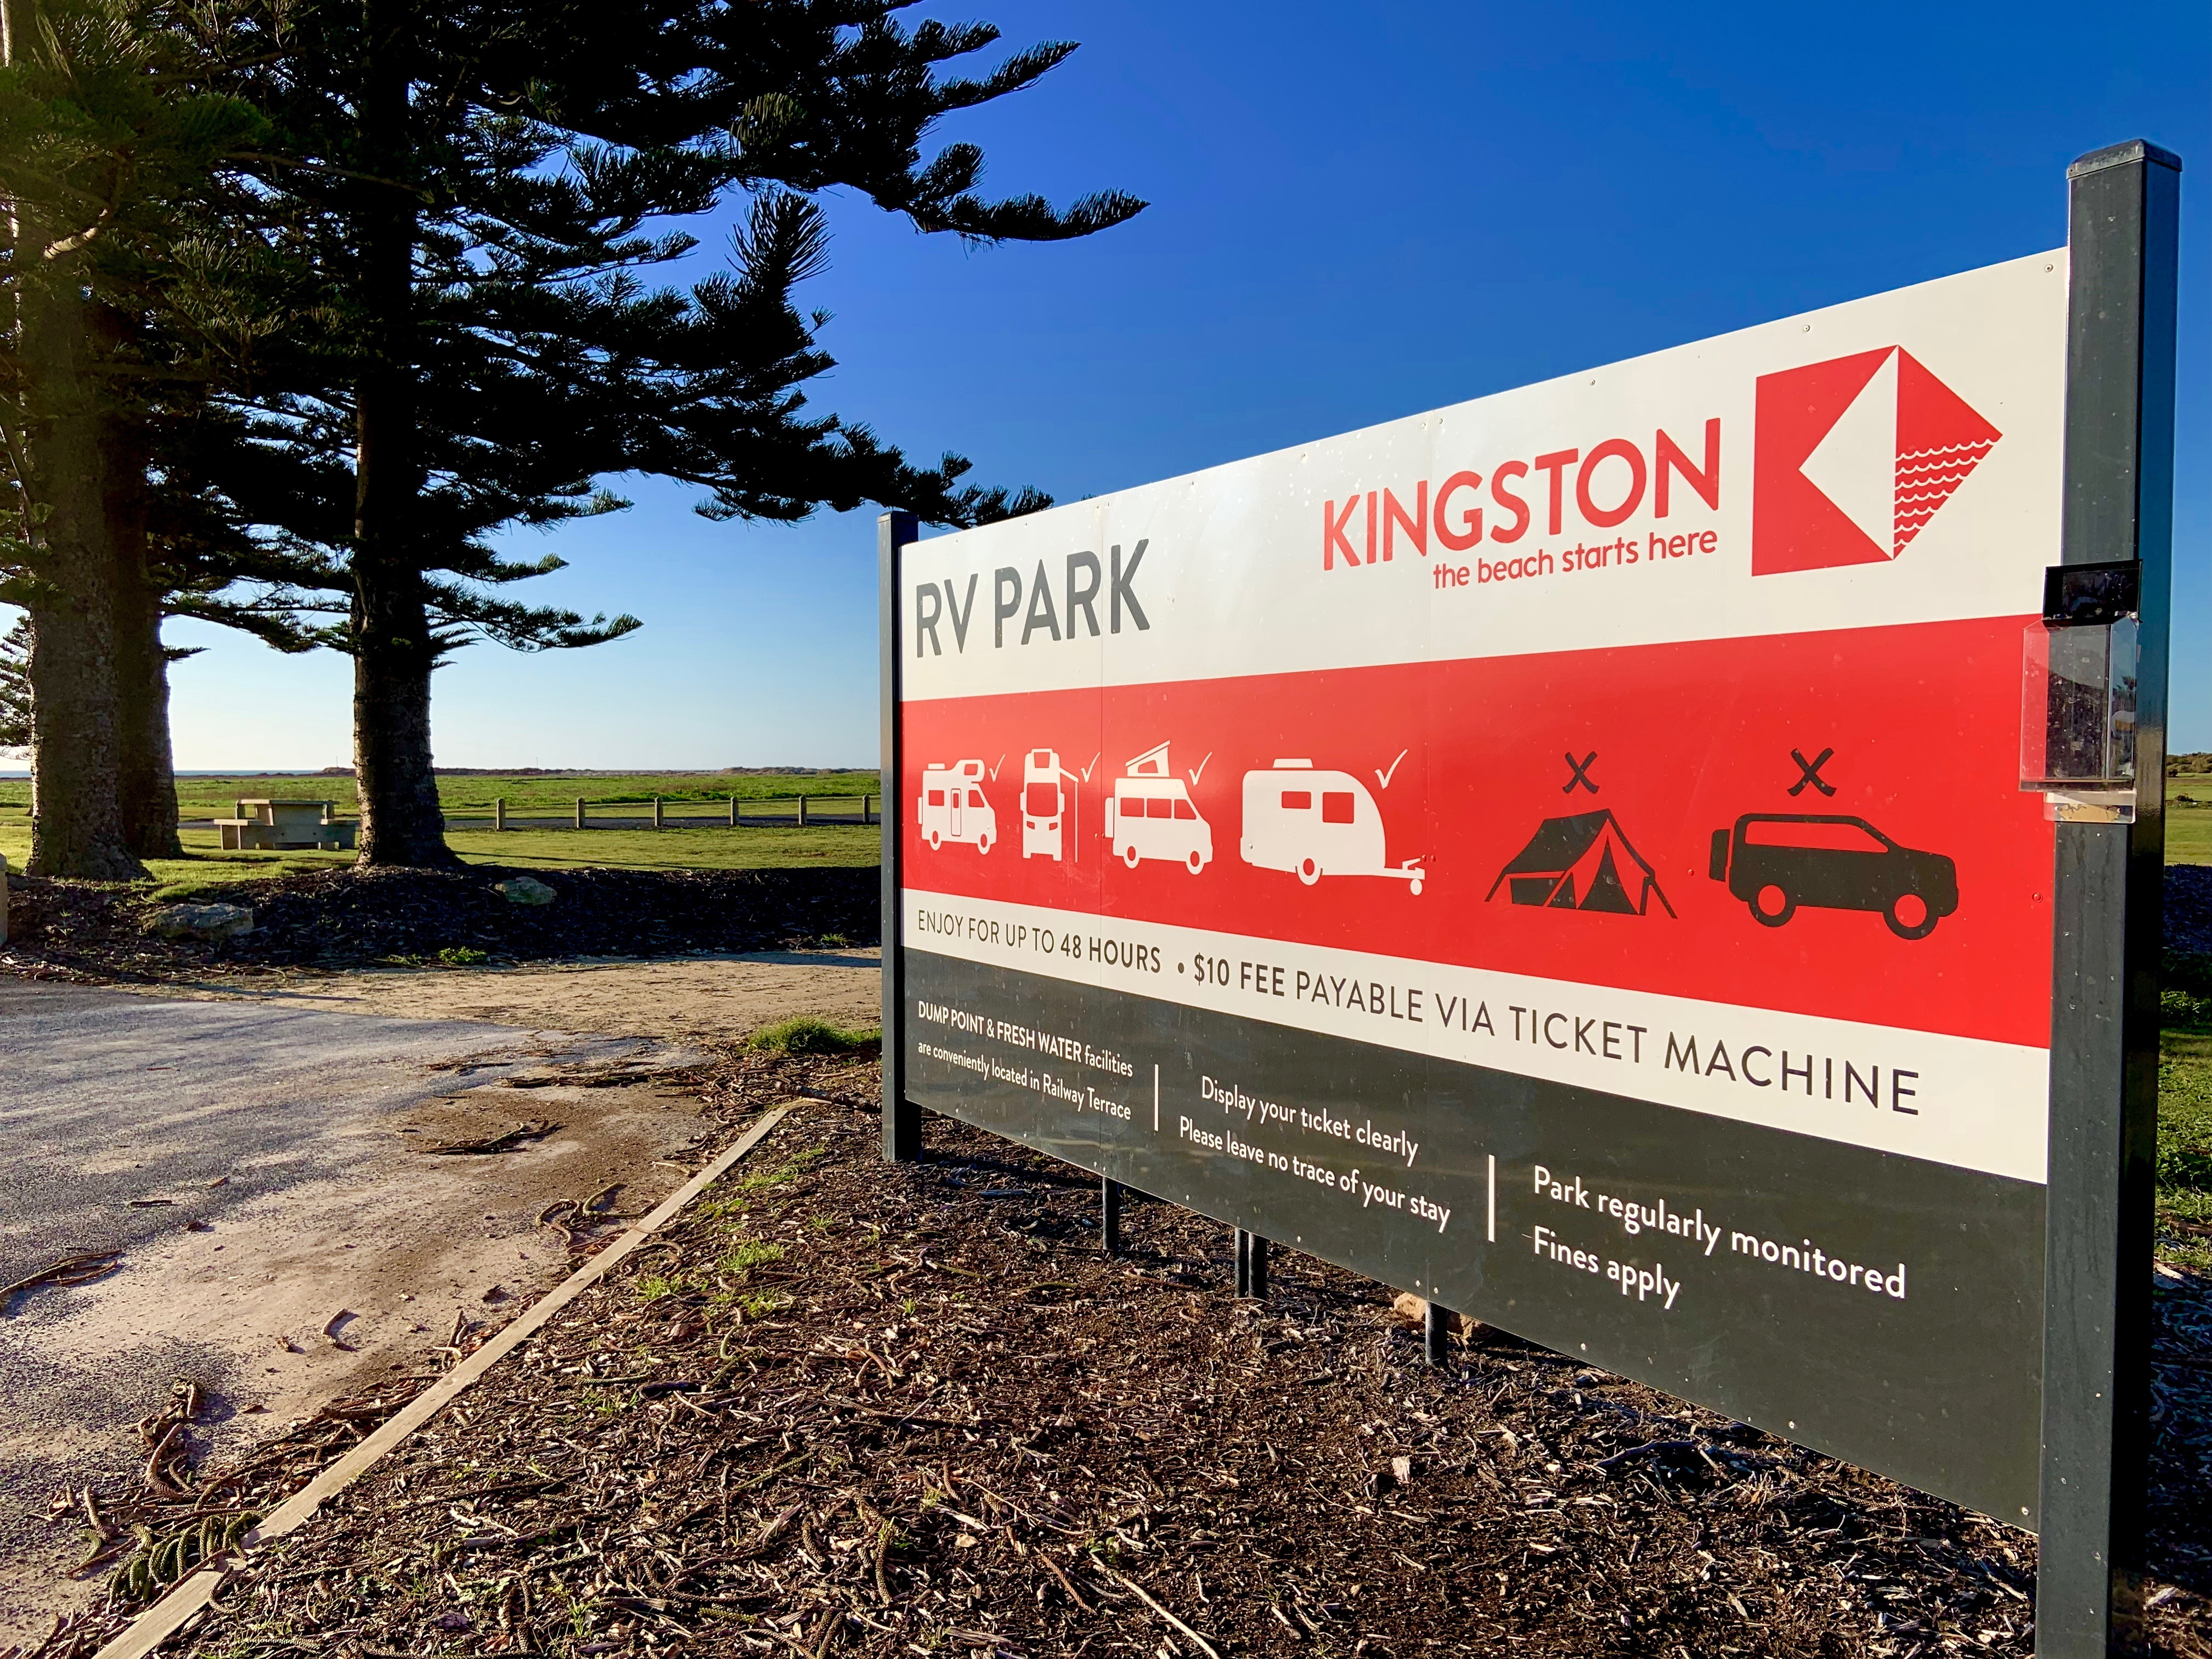 Kingston RV Park_1